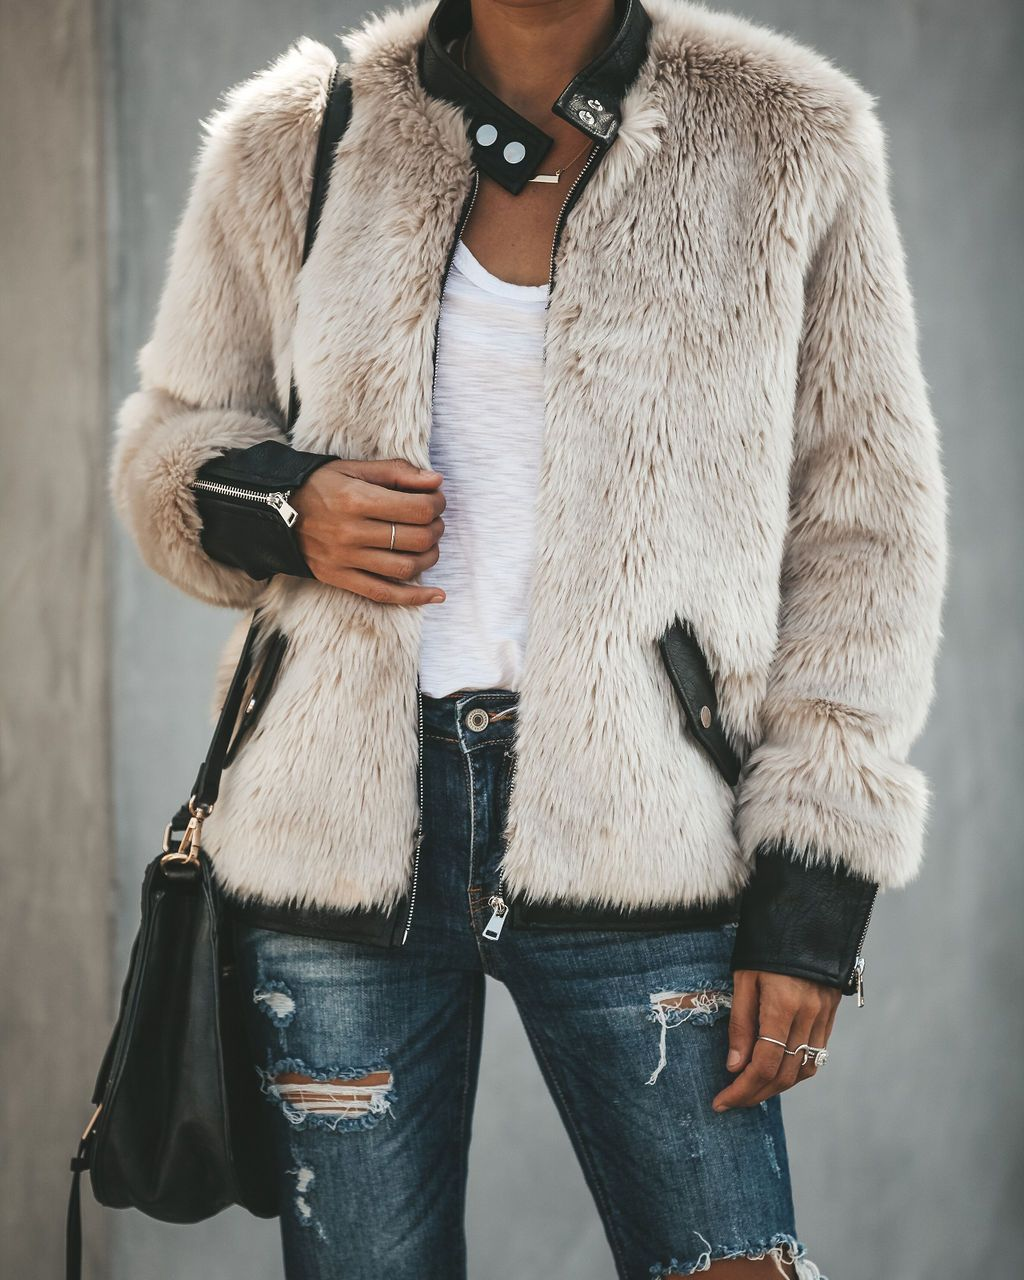 Vanity Faux Fur Leather Trim Pocketed Jacket